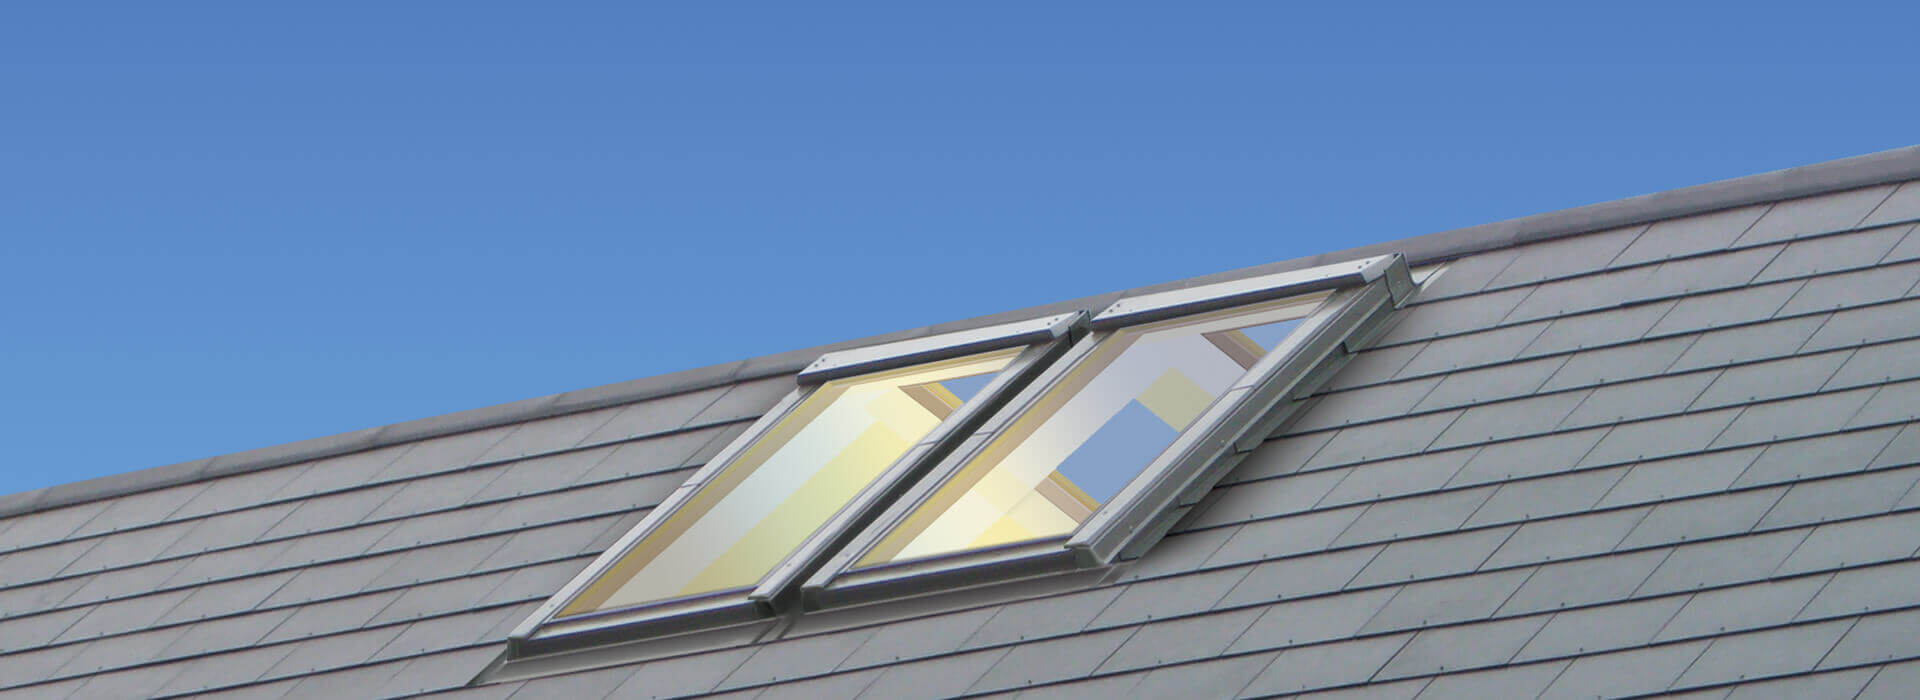 Ridge Window Keylite Roof Windows